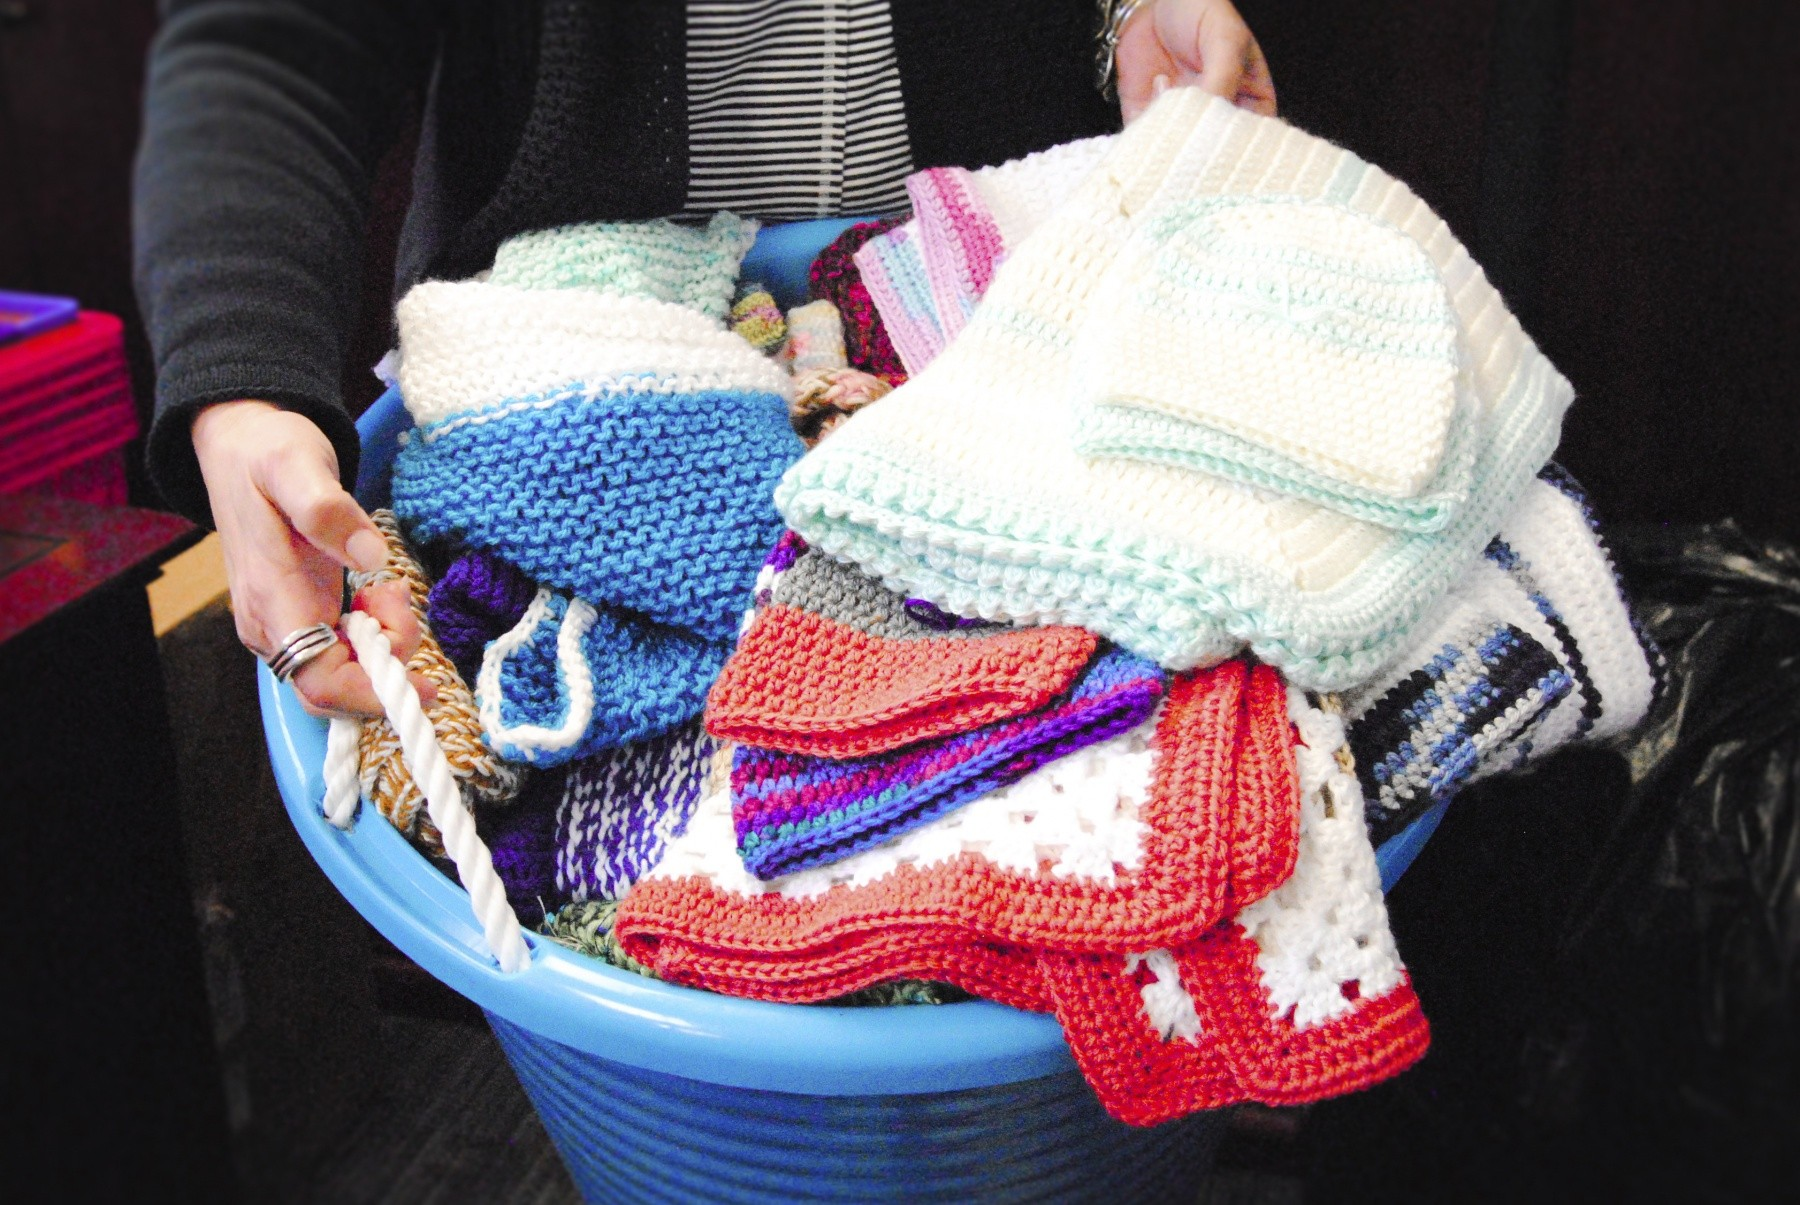 A reciprocal force for good: How two women's knitting charity helps